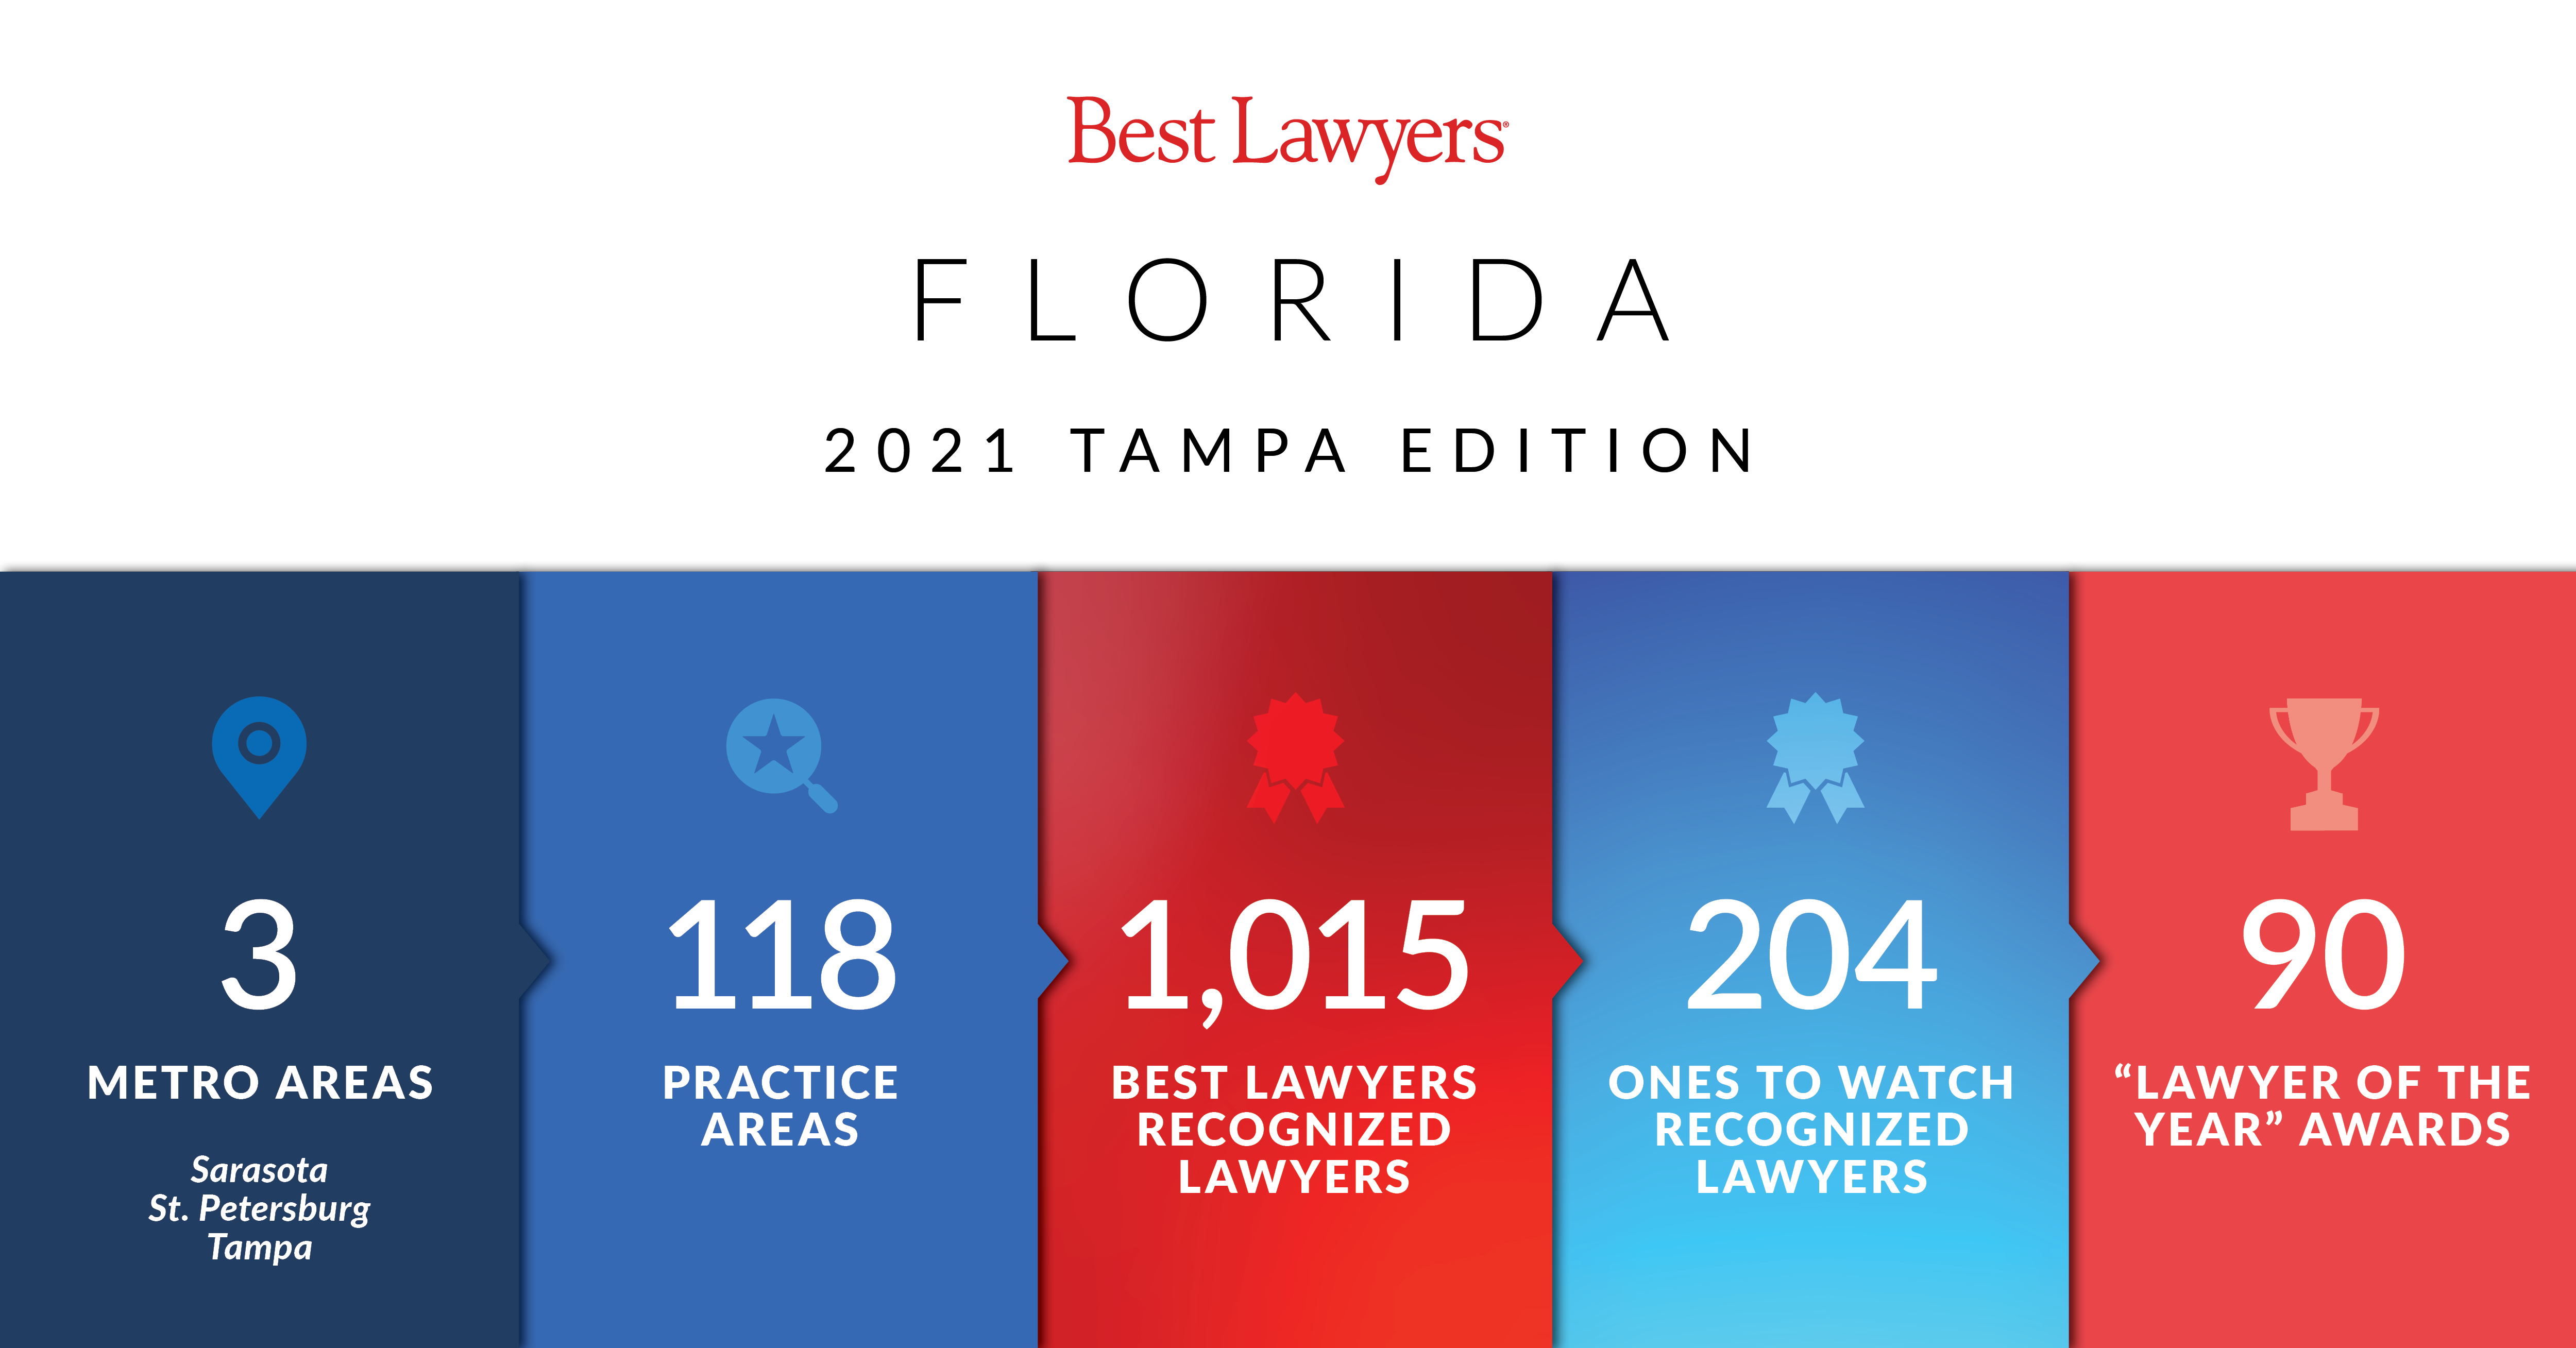 2021 Best Lawyers in Tampa stats